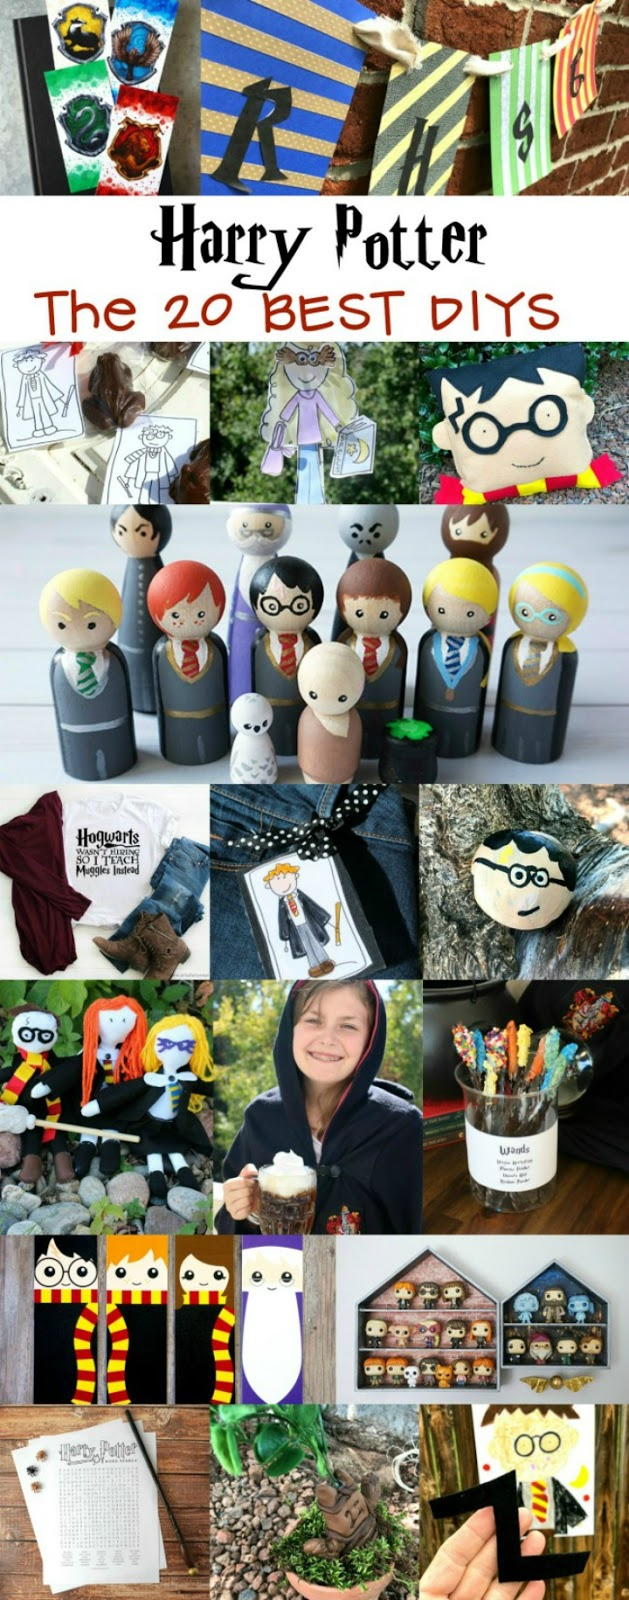 20 Best Harry Potter DIYs